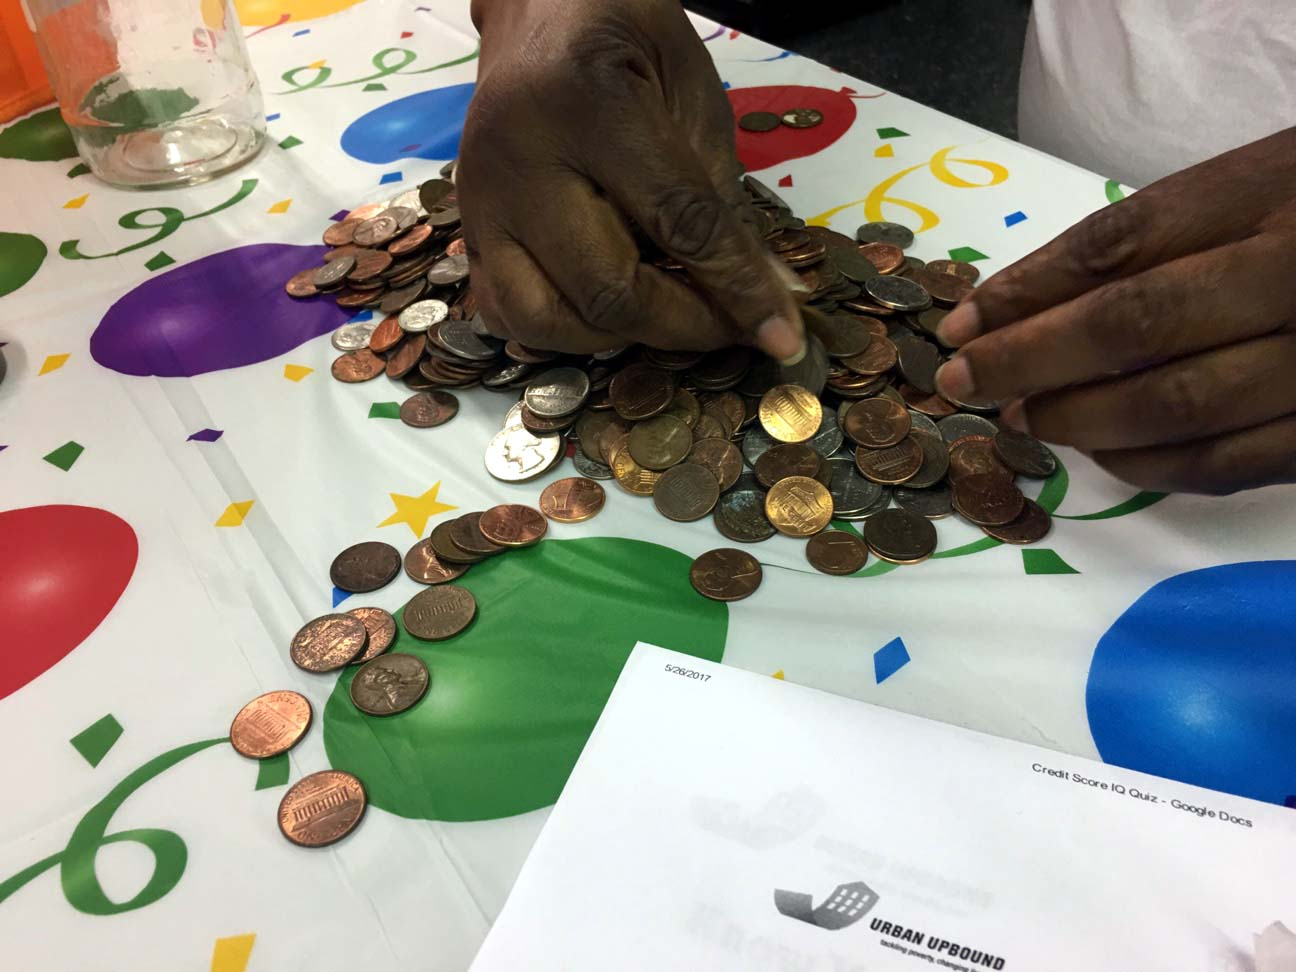 NYCHA residents are saving money every month by simply collecting the change they bring home at the end of a day. Photo: NYCHA on Instagram